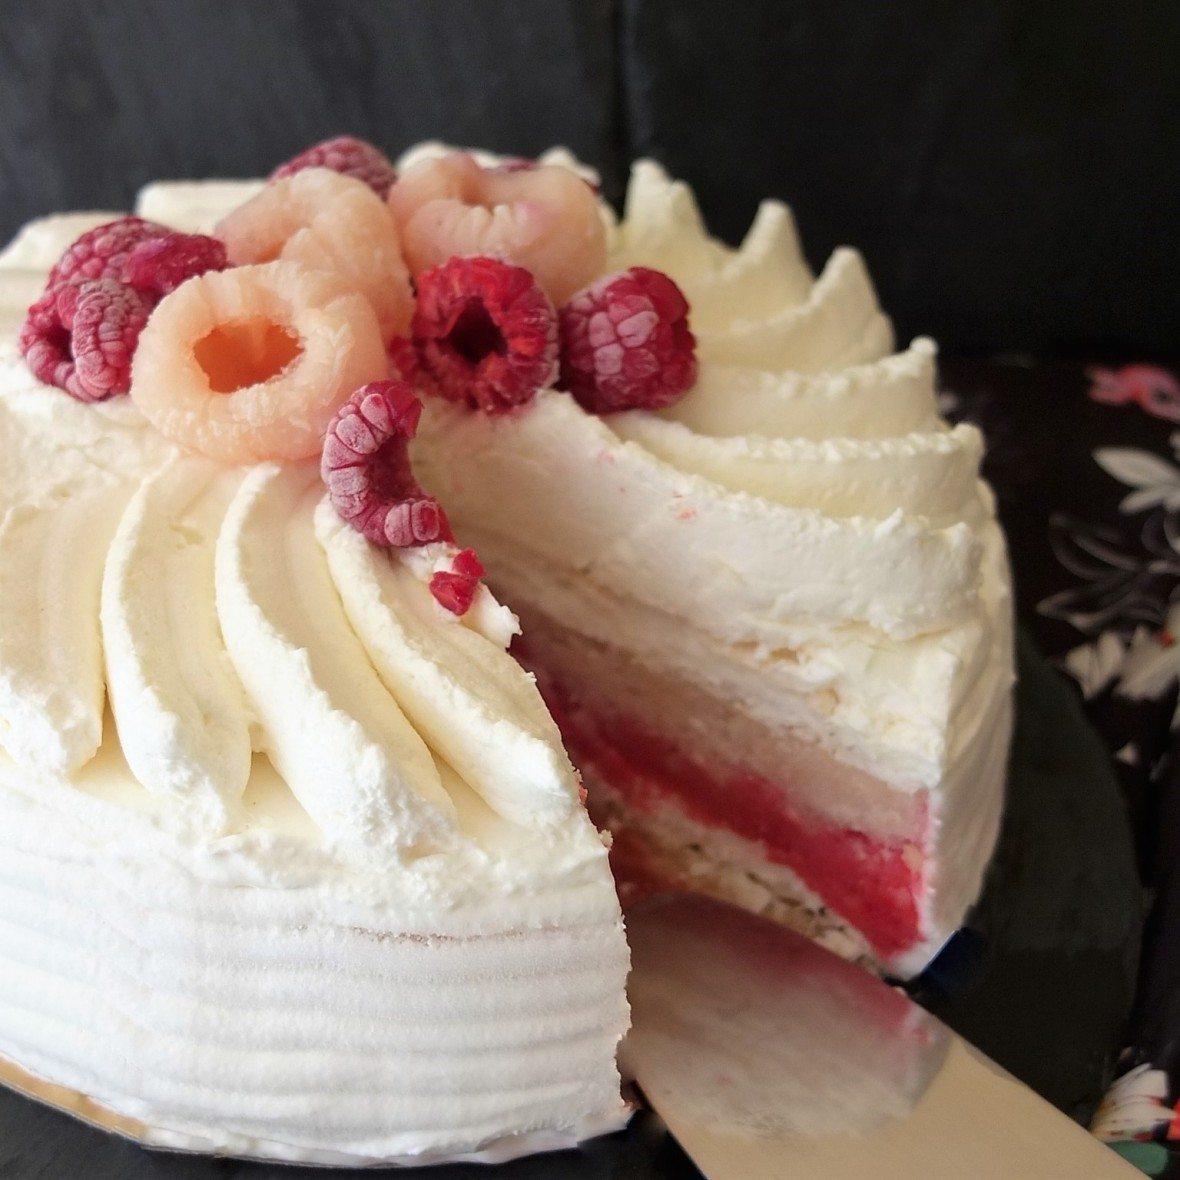 Vacherin glacé Ispahan - Raspberry, lychee and rose frozen sorbet meringue cake